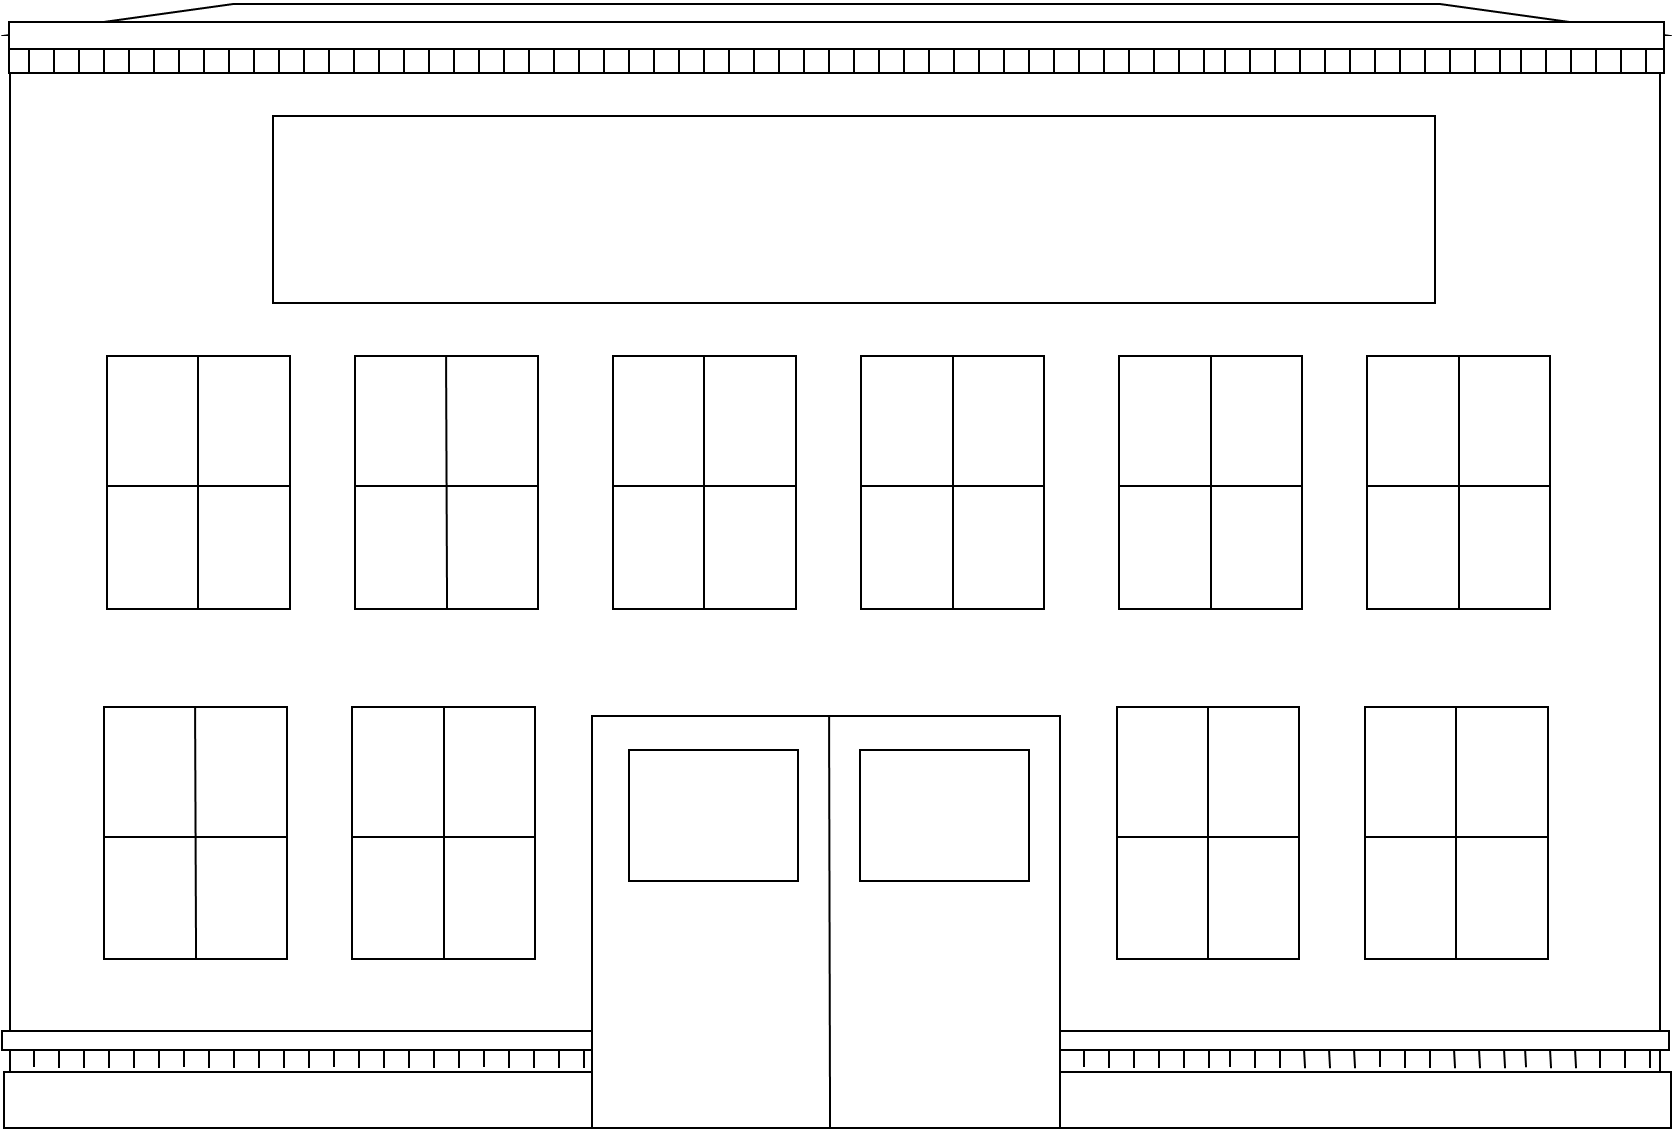 Office building clipart black and white png transparent download School building clipart black and white - ClipartFest transparent download